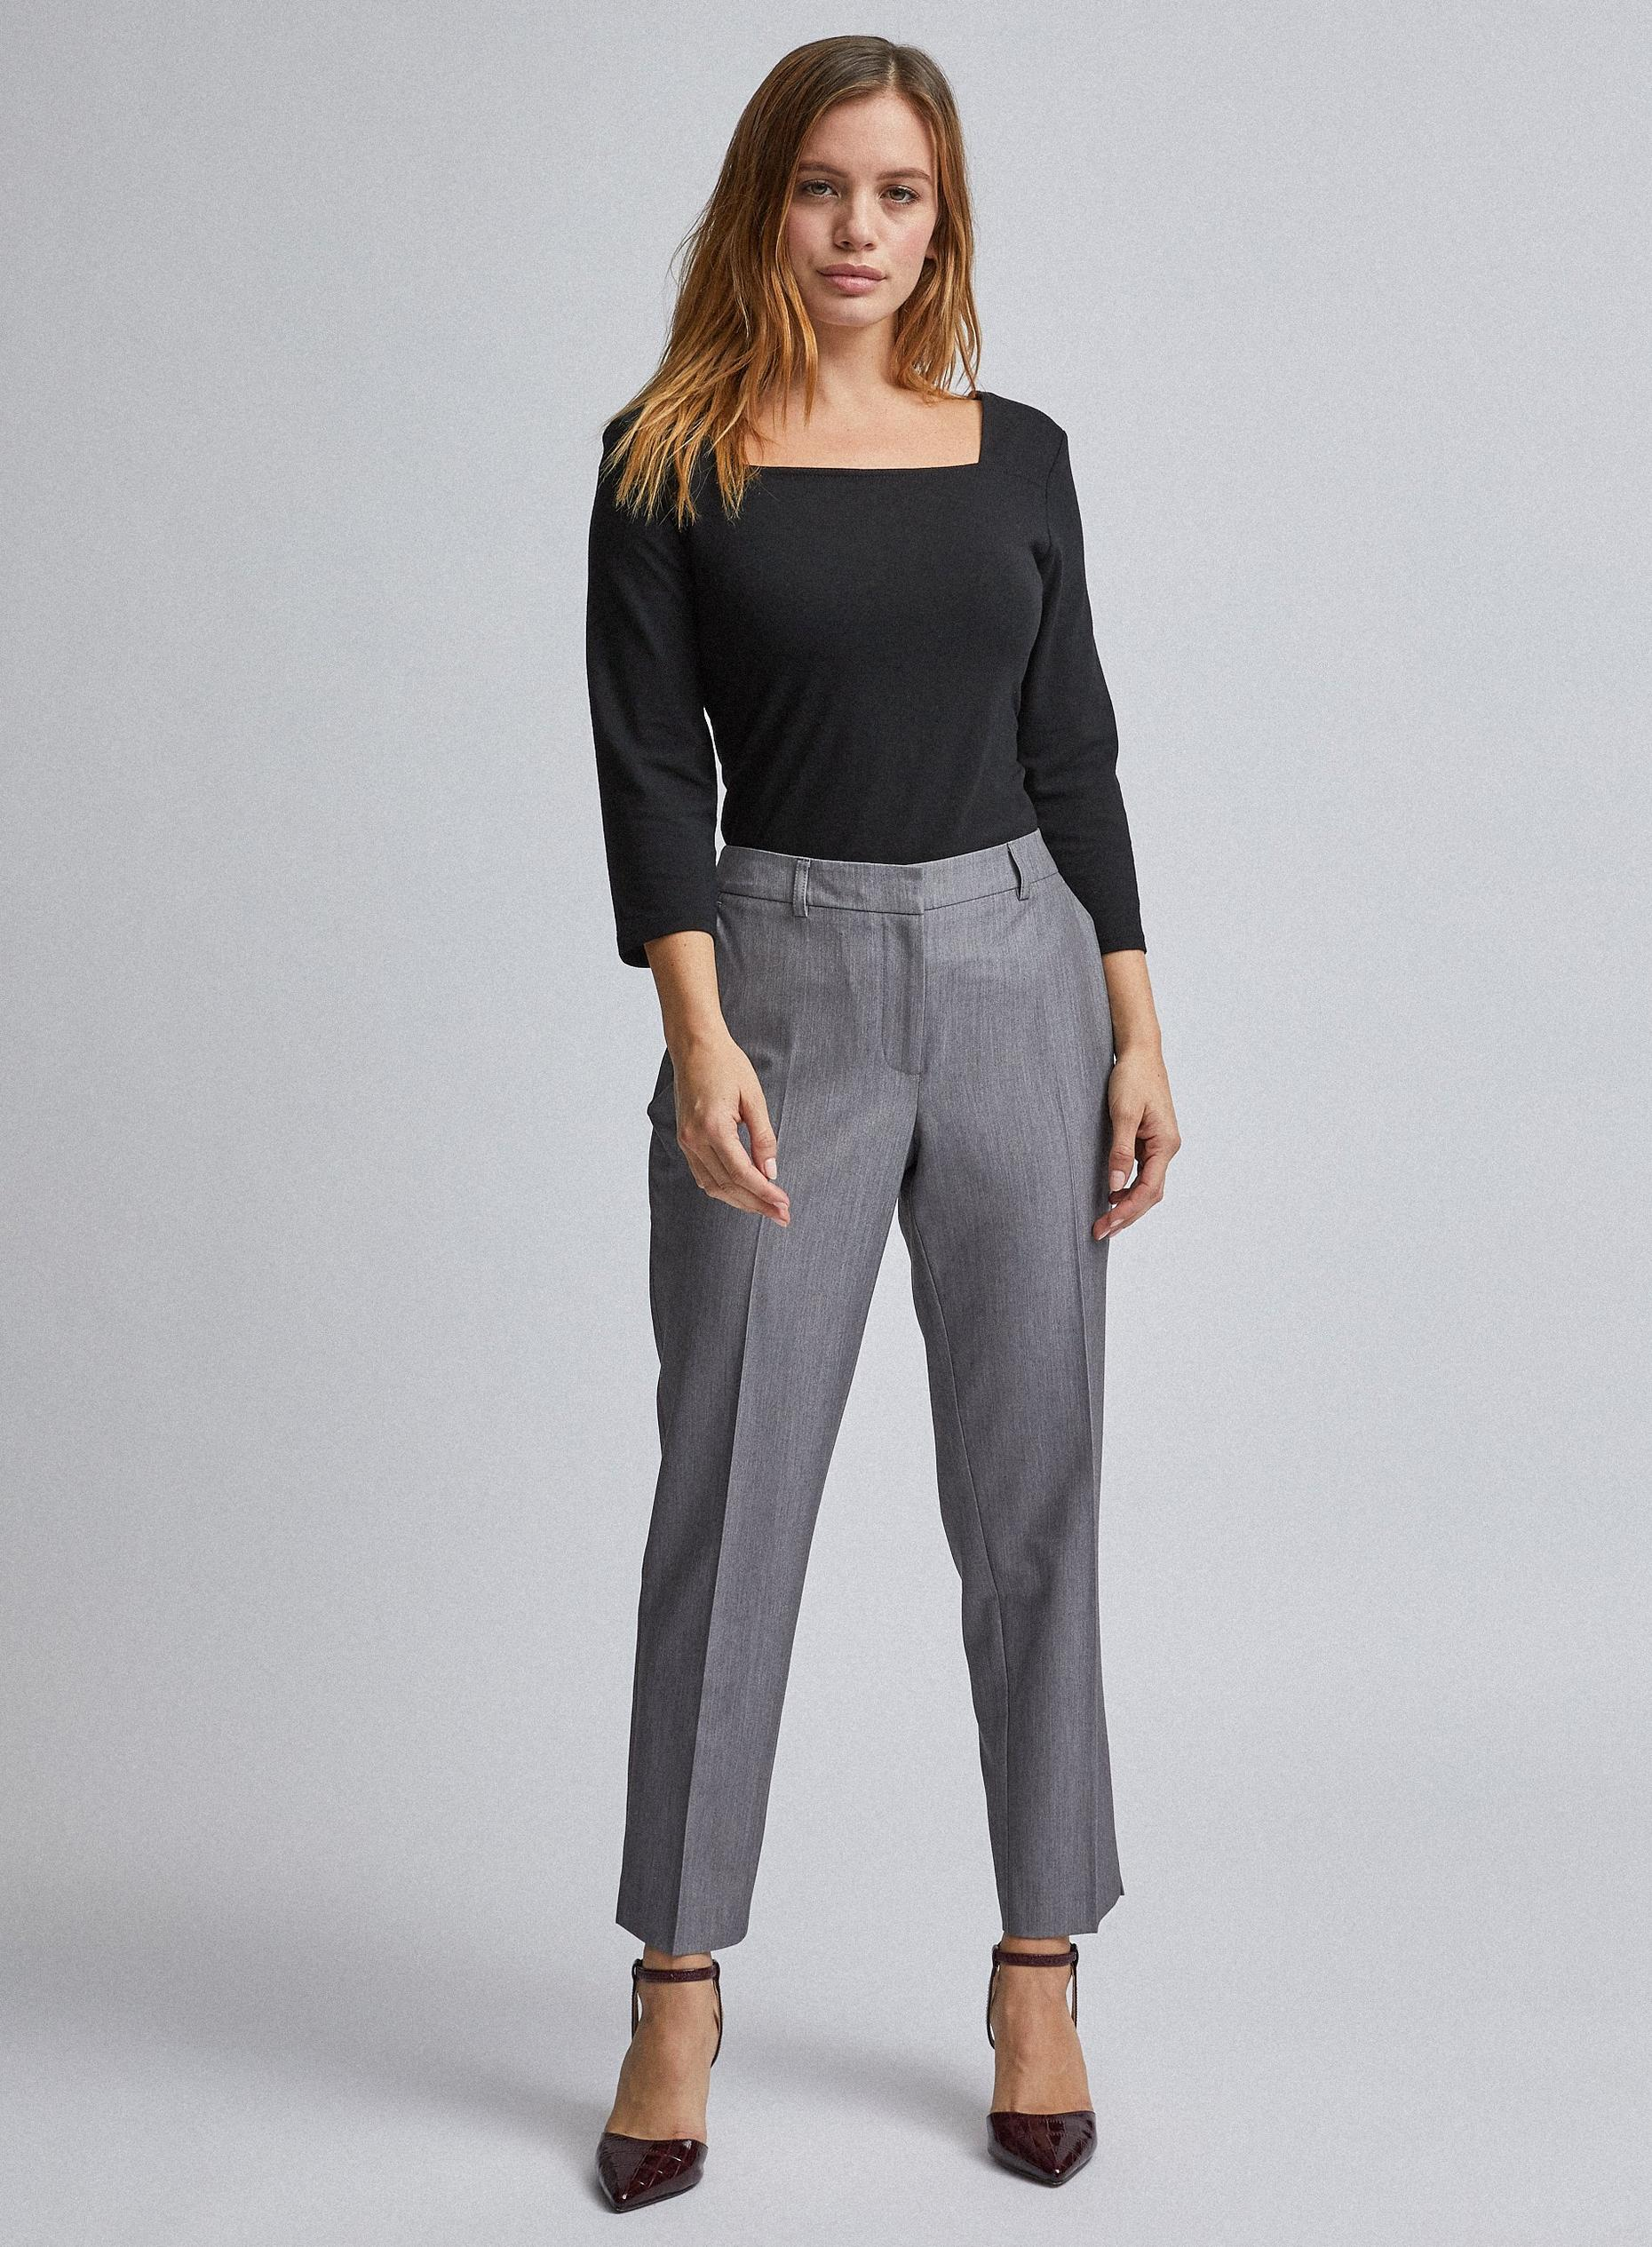 Petites Dark Grey Ankle Grazer Trousers